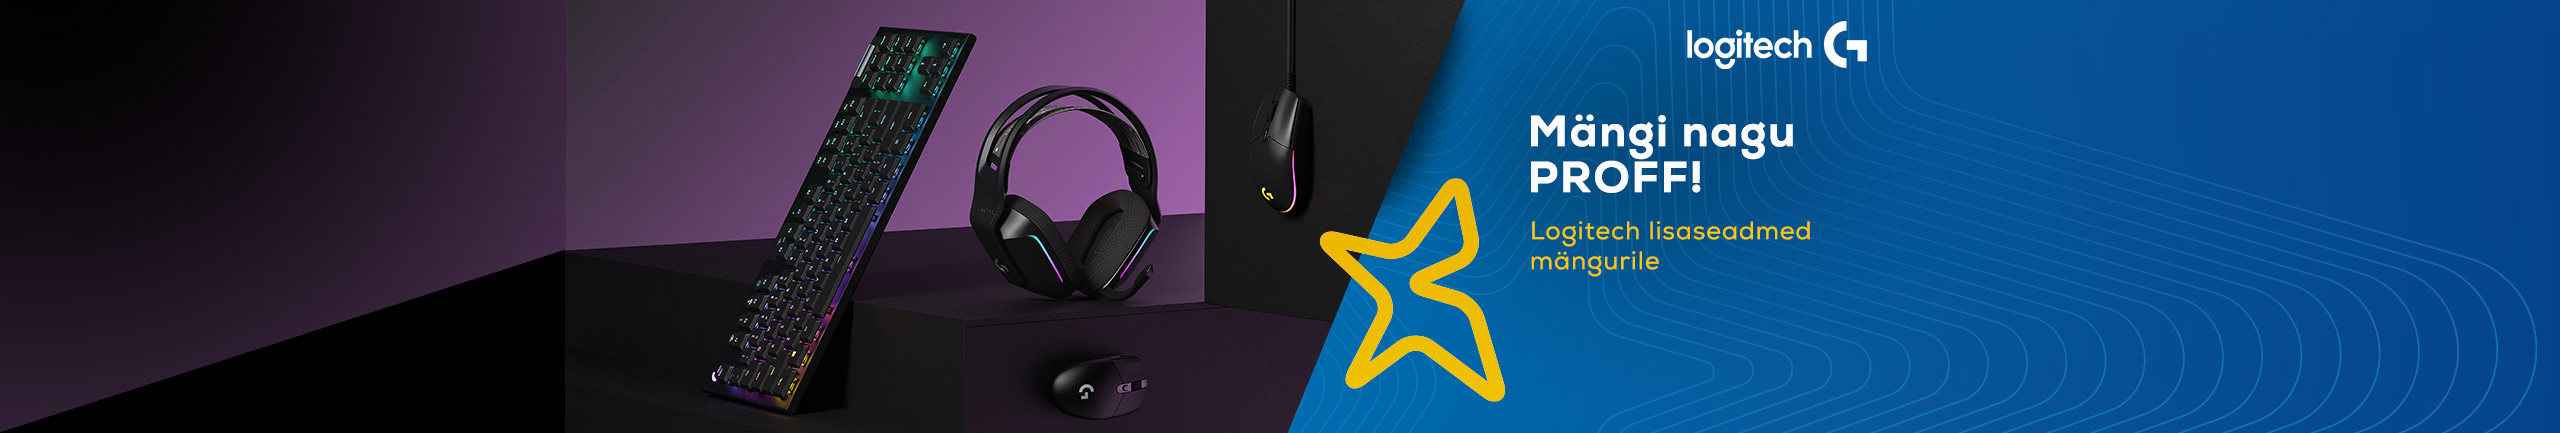 Play like a pro! Logitech devices for gamers